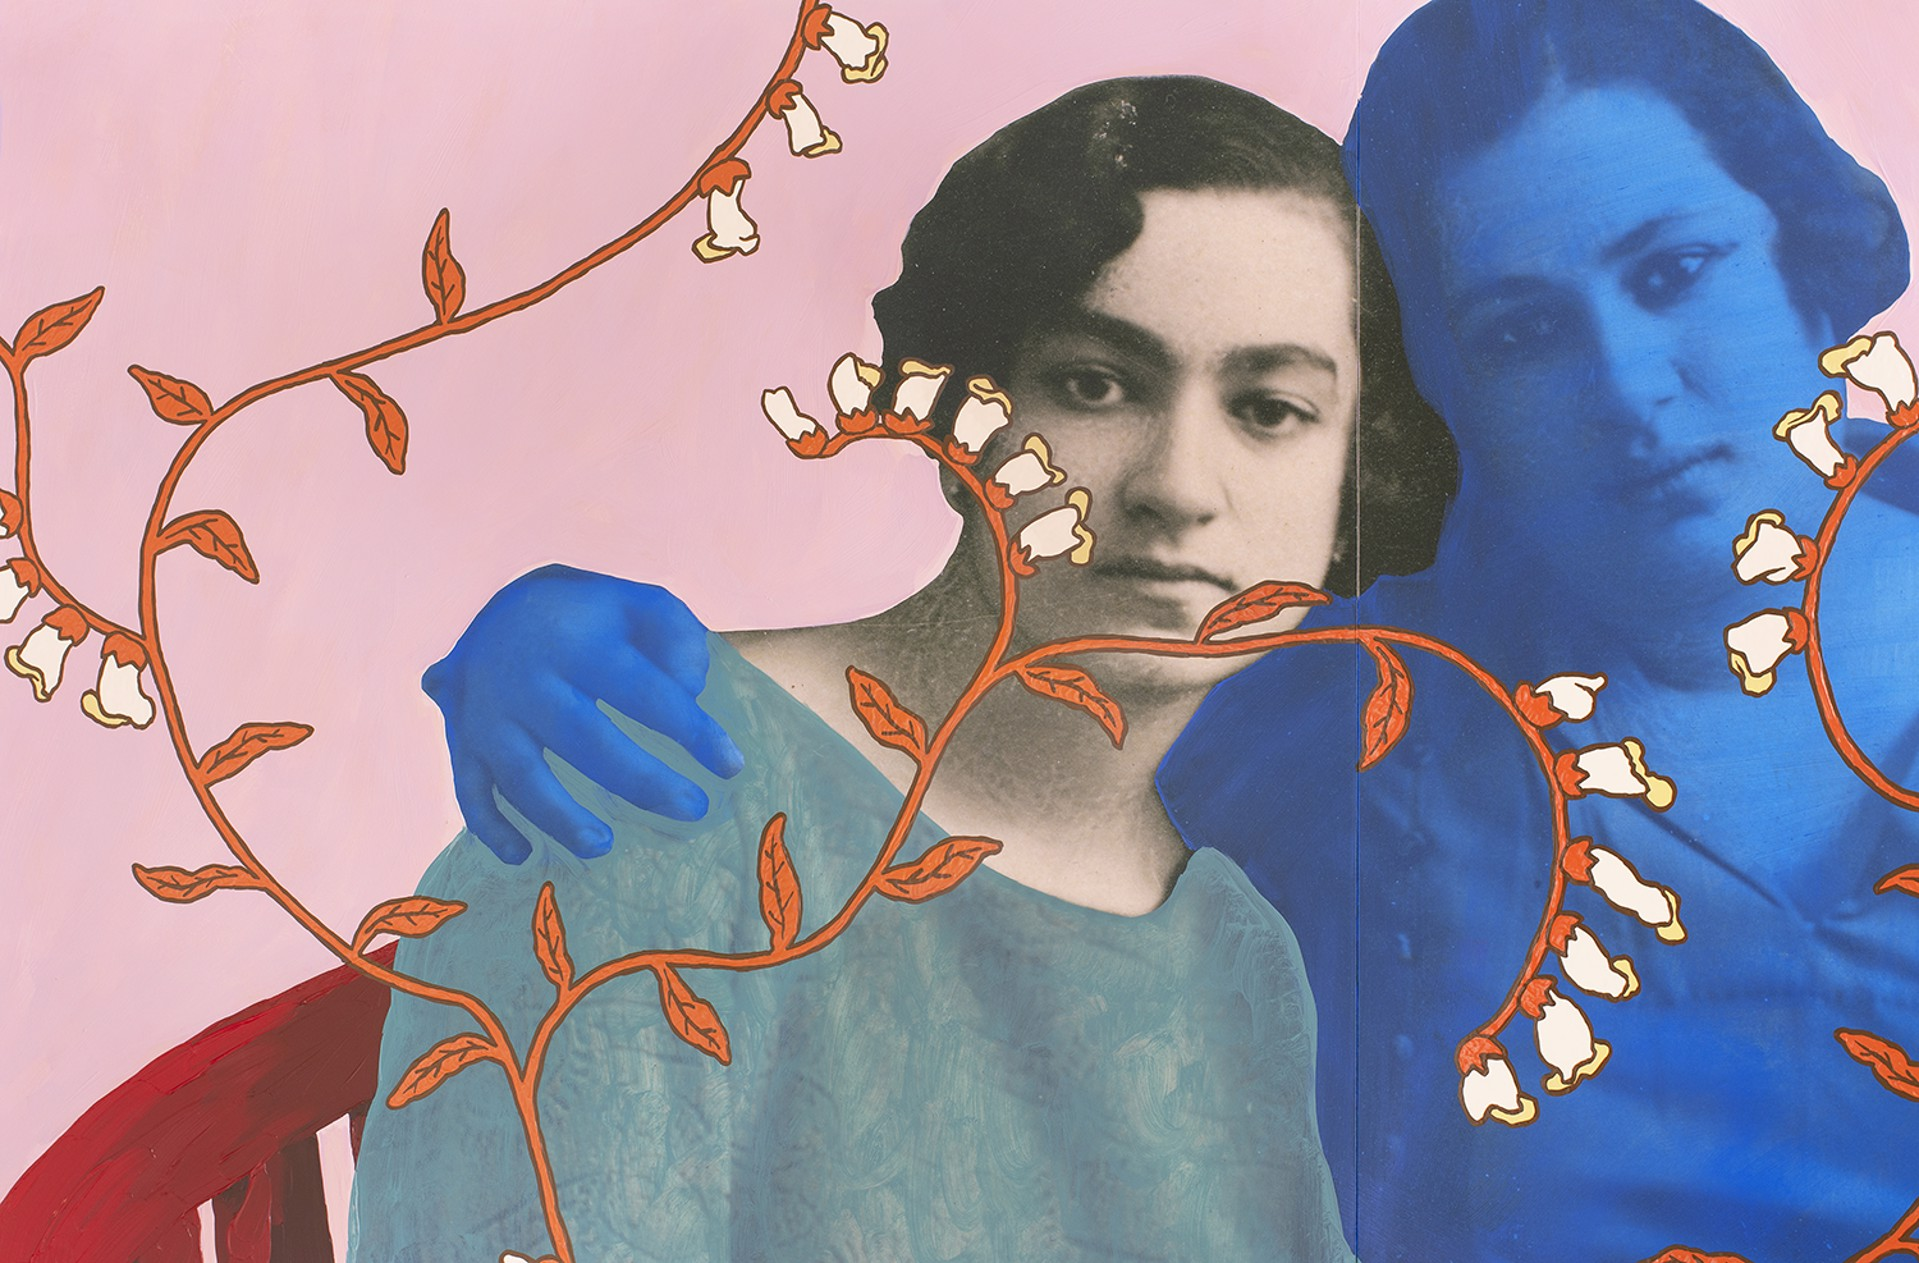 Untitled (Family Portrait with Photograph) by Daisy Patton